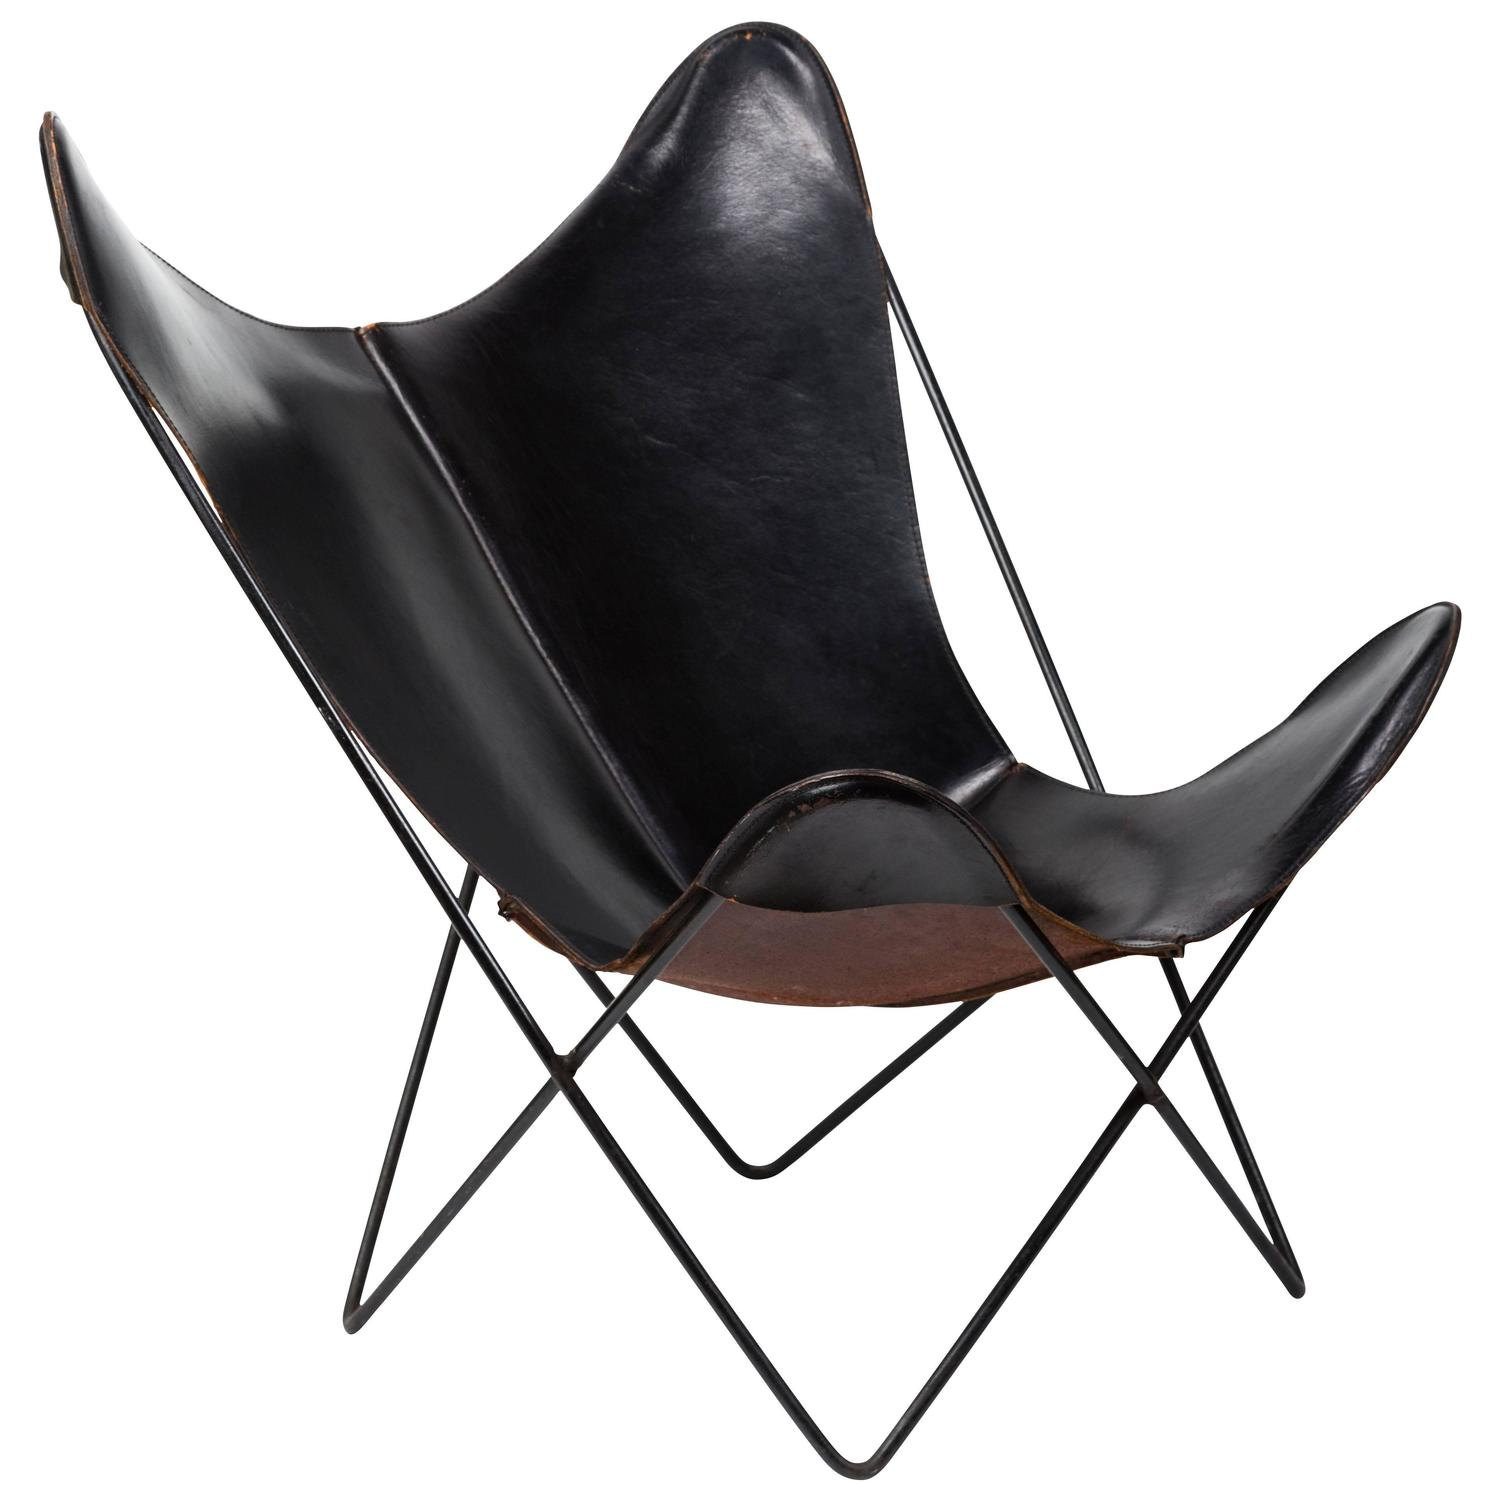 Butterfly Chair Knoll Leather Butterfly Chair By Jorge Ferrari Hardoy For Knoll